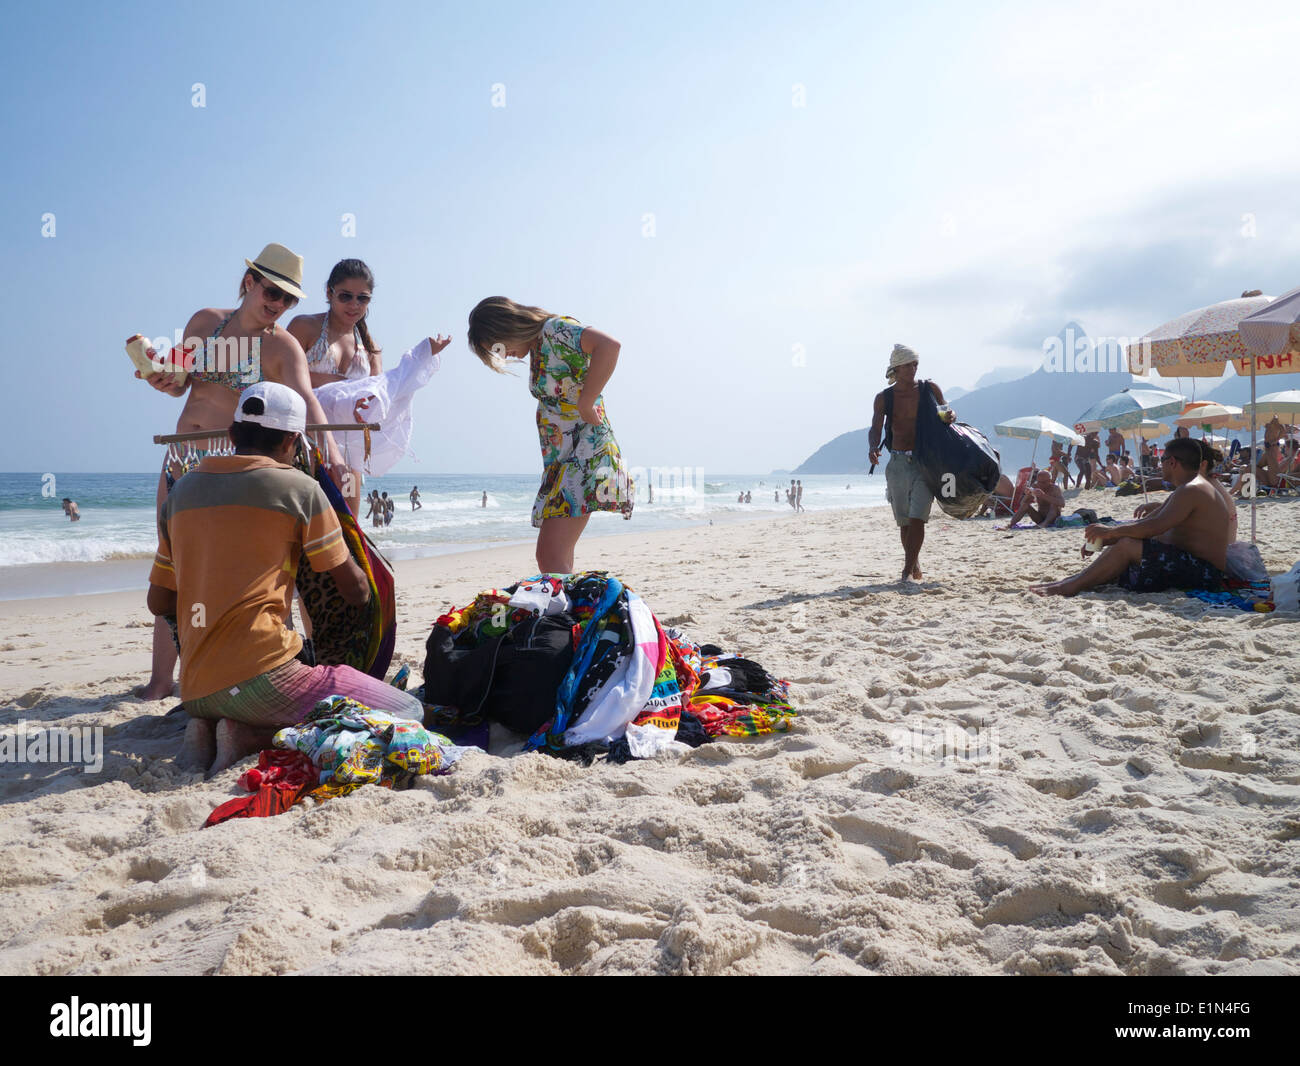 RIO DE JANEIRO, BRAZIL - CIRCA MARCH, 2013: Customers try on merchandise from a vendor in a typical scene on Ipanema Beach. - Stock Image